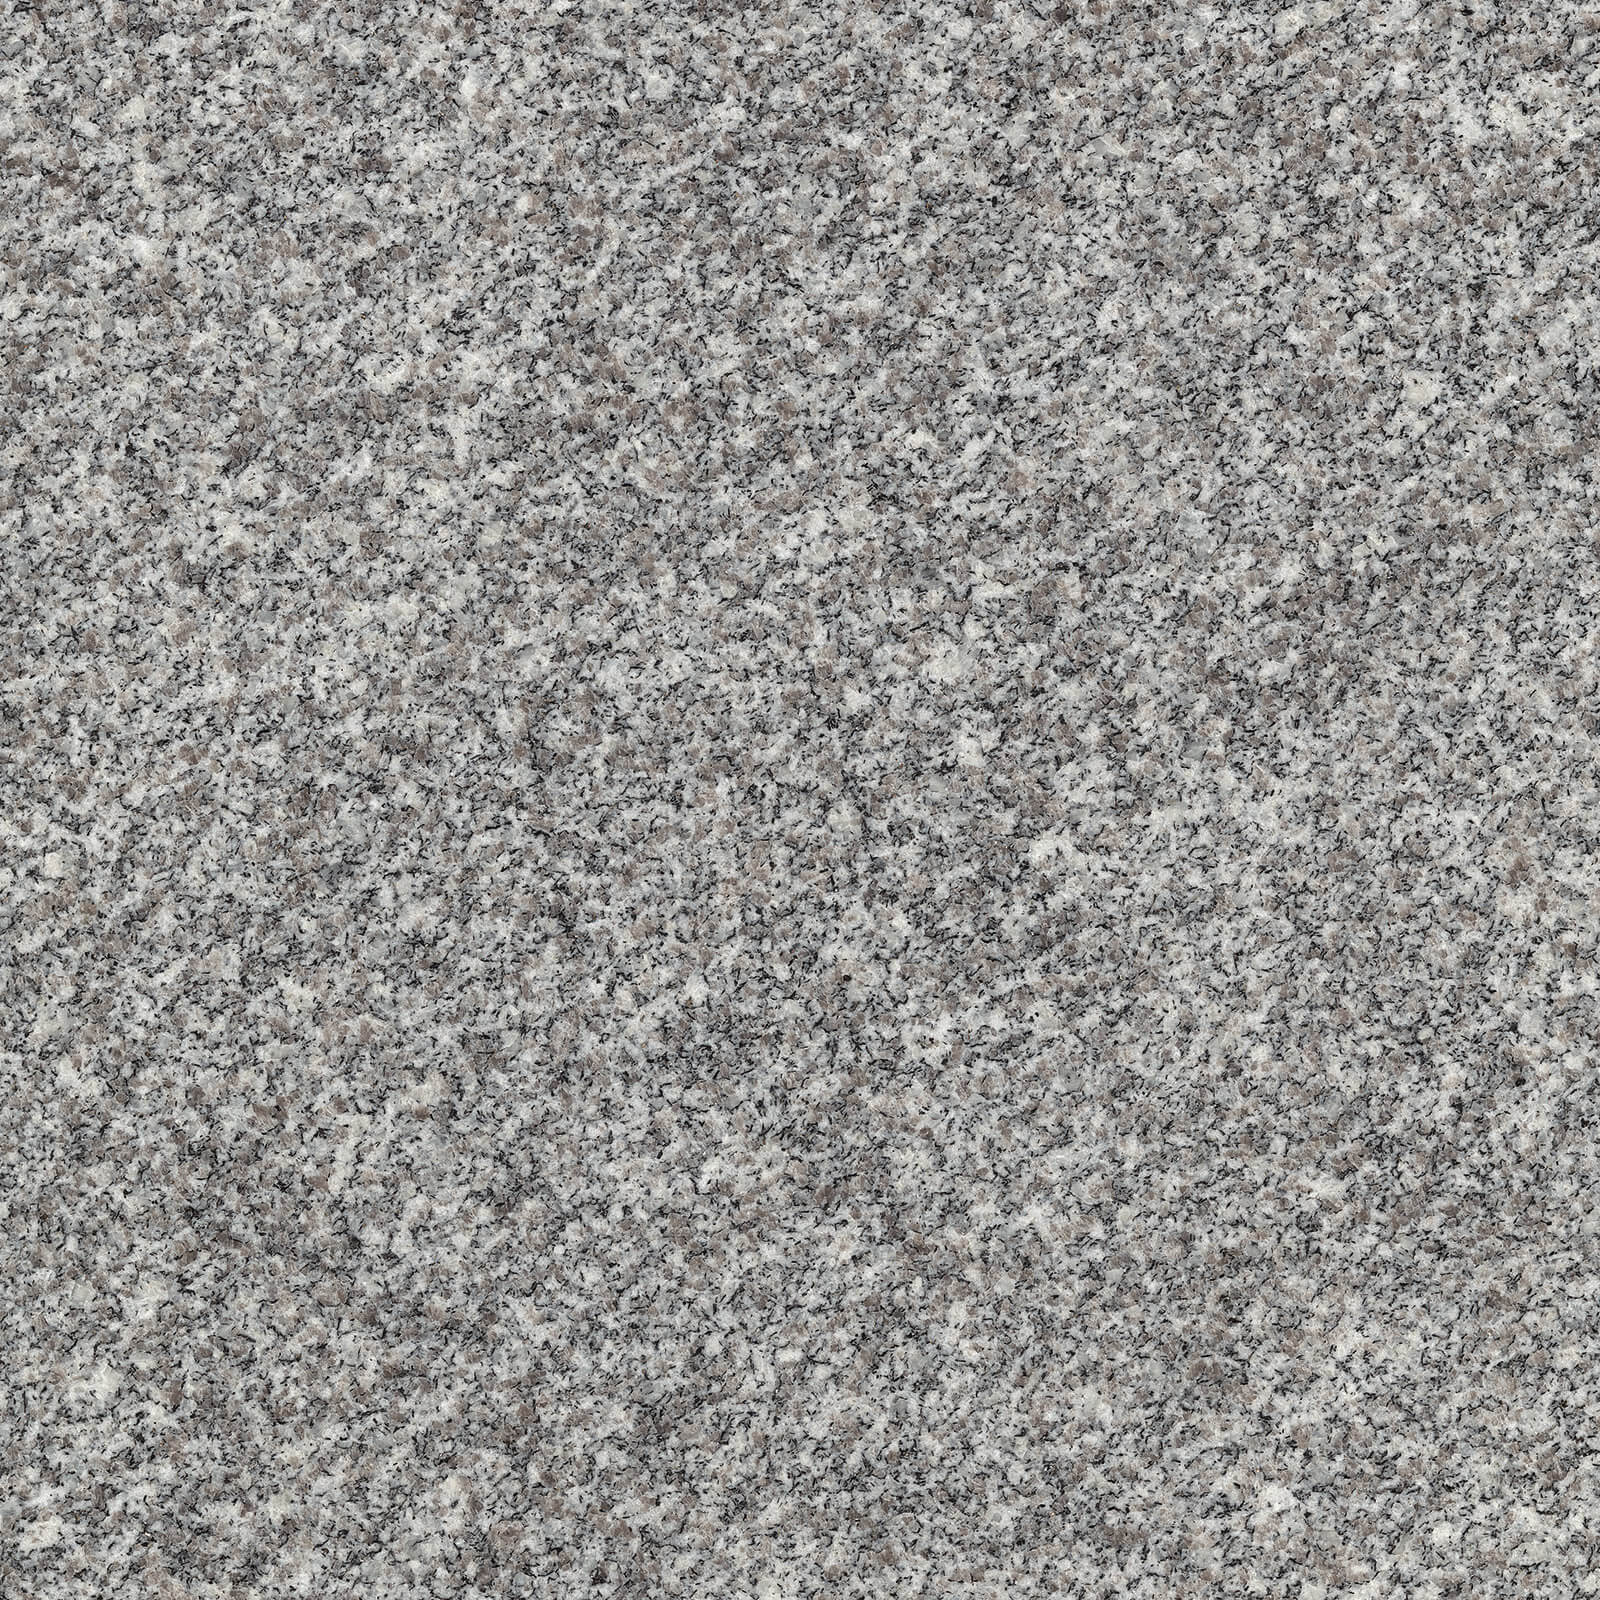 Woodbury gray polycor natural stone north america for How to hone marble